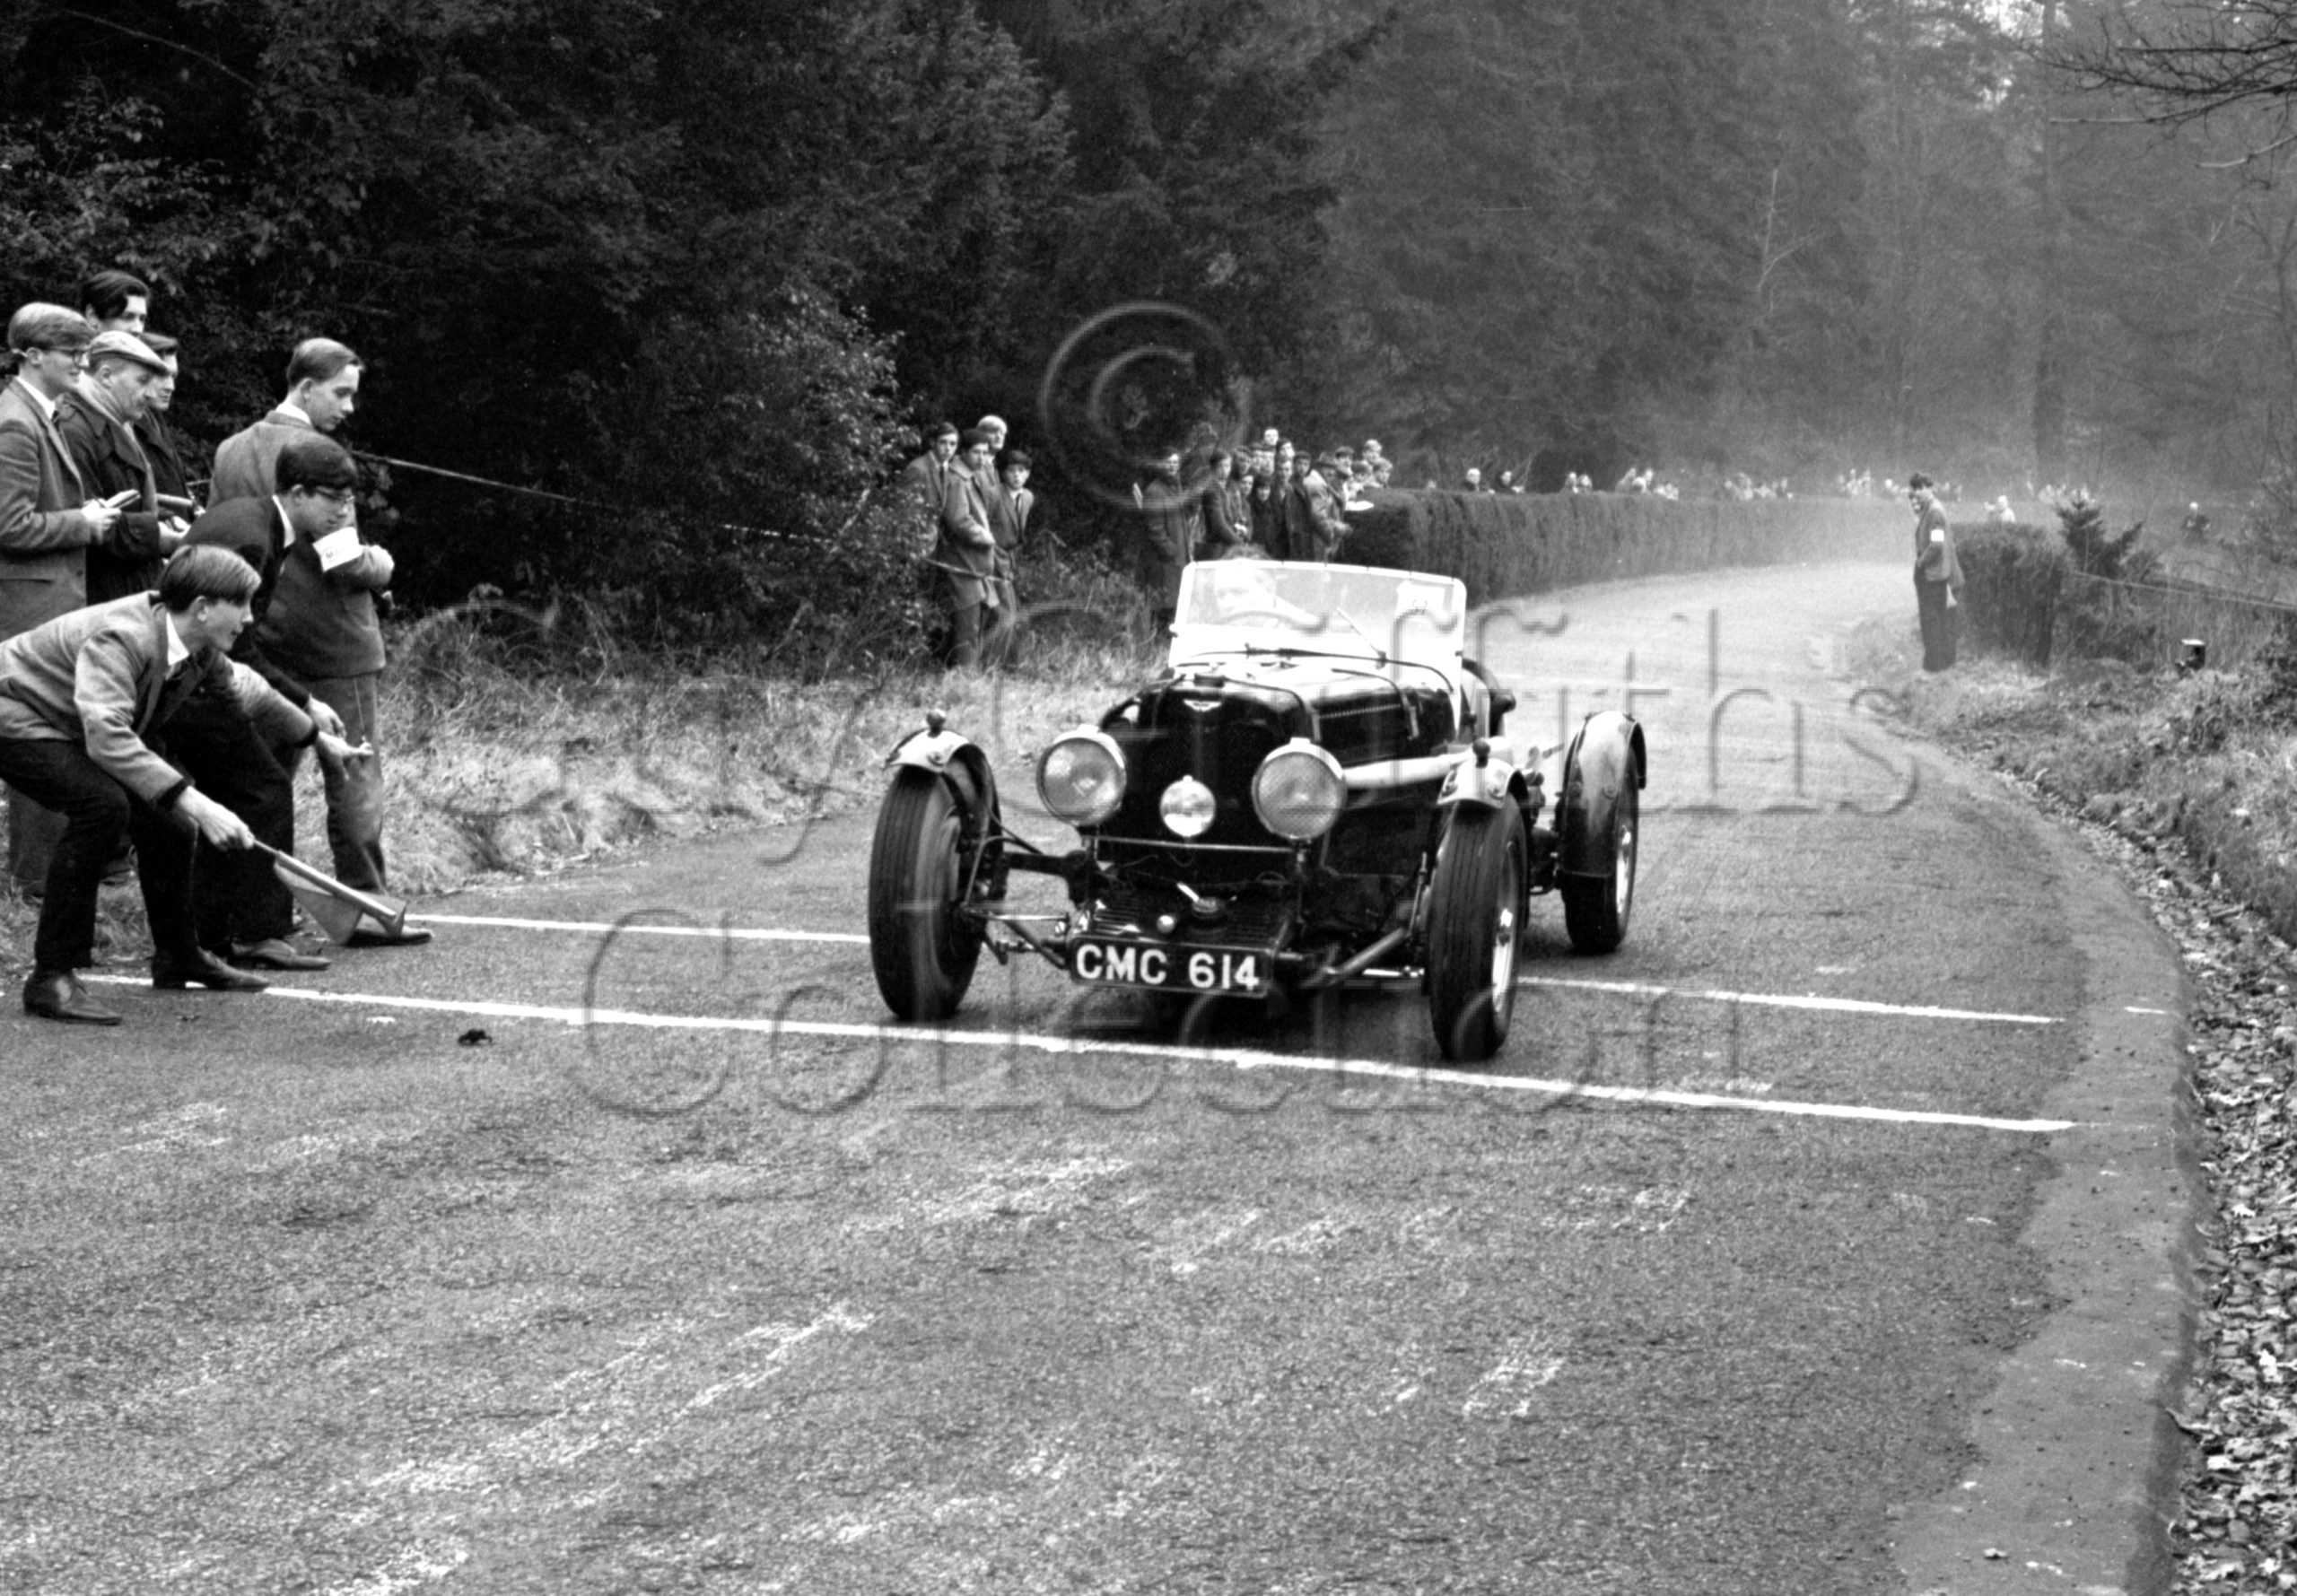 80-121–D-Edwards–Aston-Martin-CMC-614–Charterhouse–09-02-1964.jpg - Guy Griffiths Collection